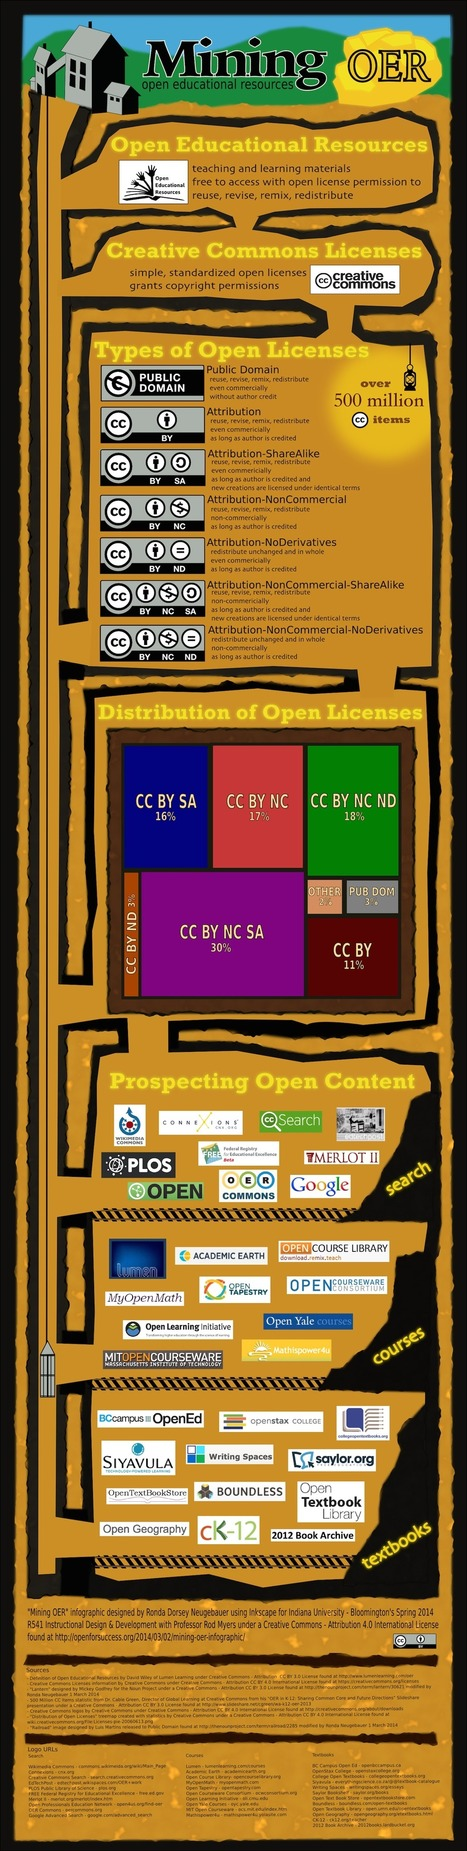 Mining OER infographic | Universidad 3.0 | Scoop.it